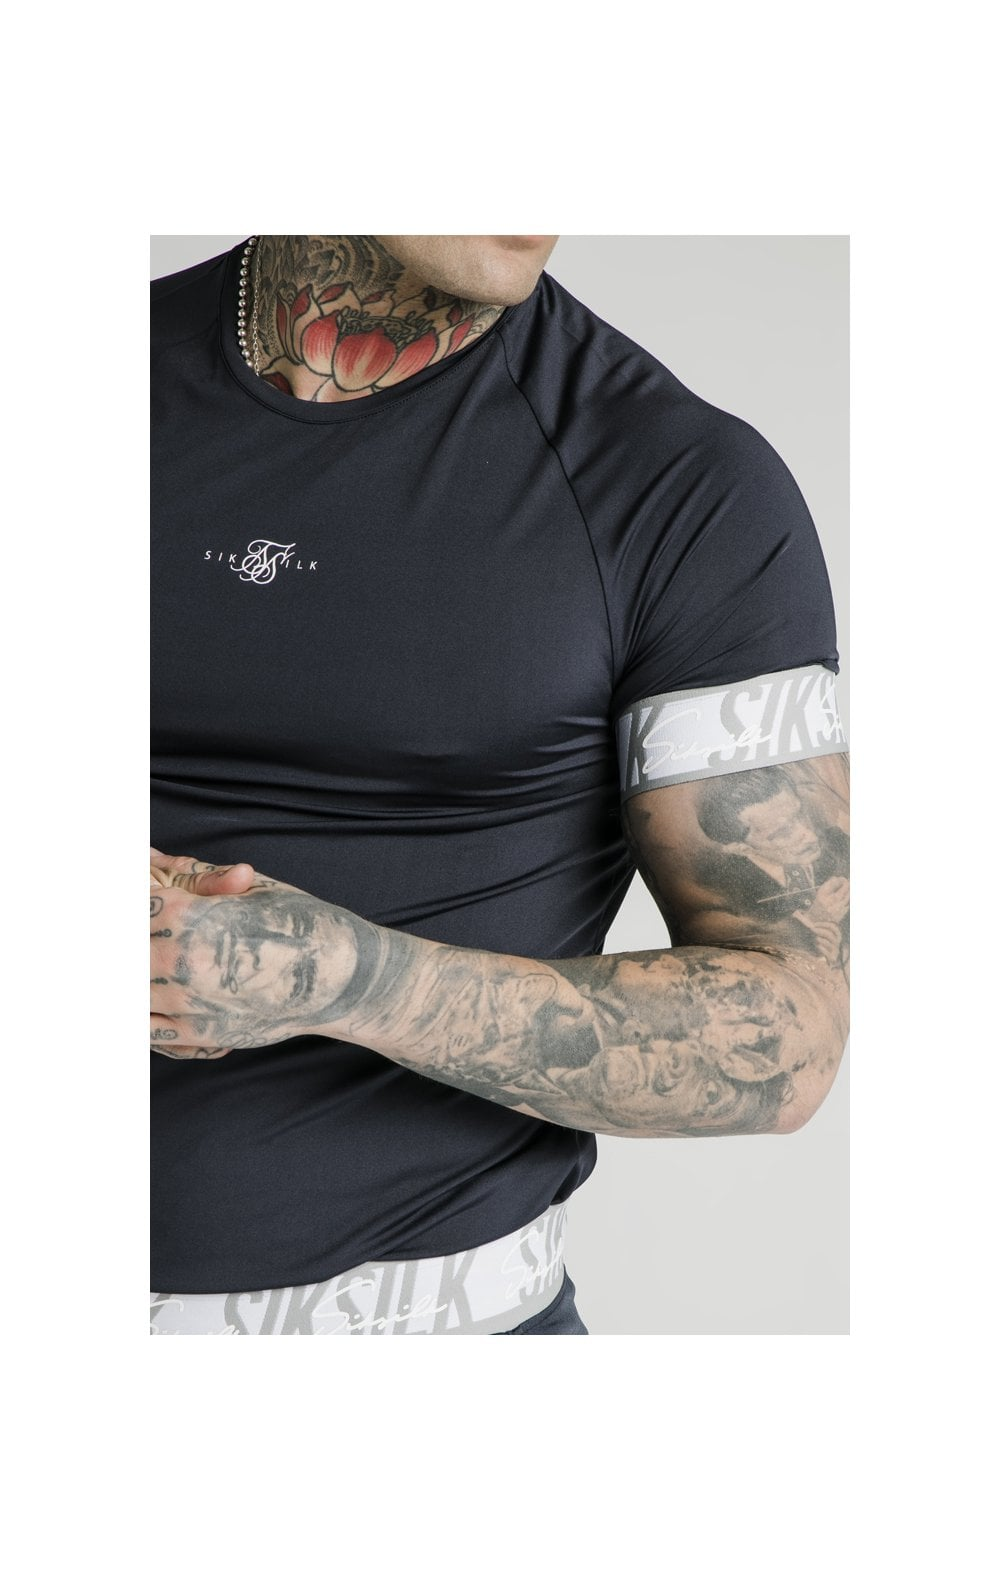 SikSilk S/S Scope Tape Tech Tee – Navy (1)